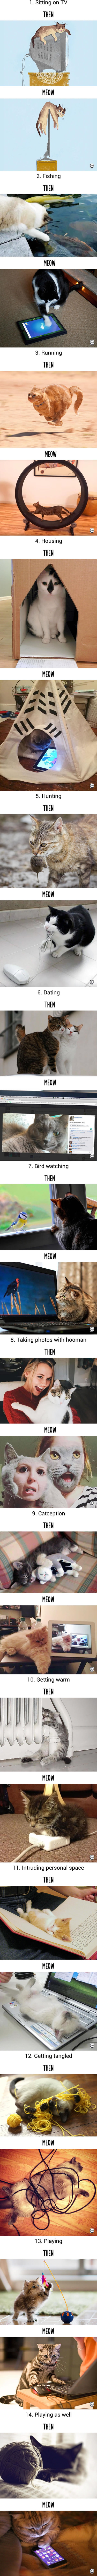 Then vs Meow: How Technology Has Changed Cats' Lives